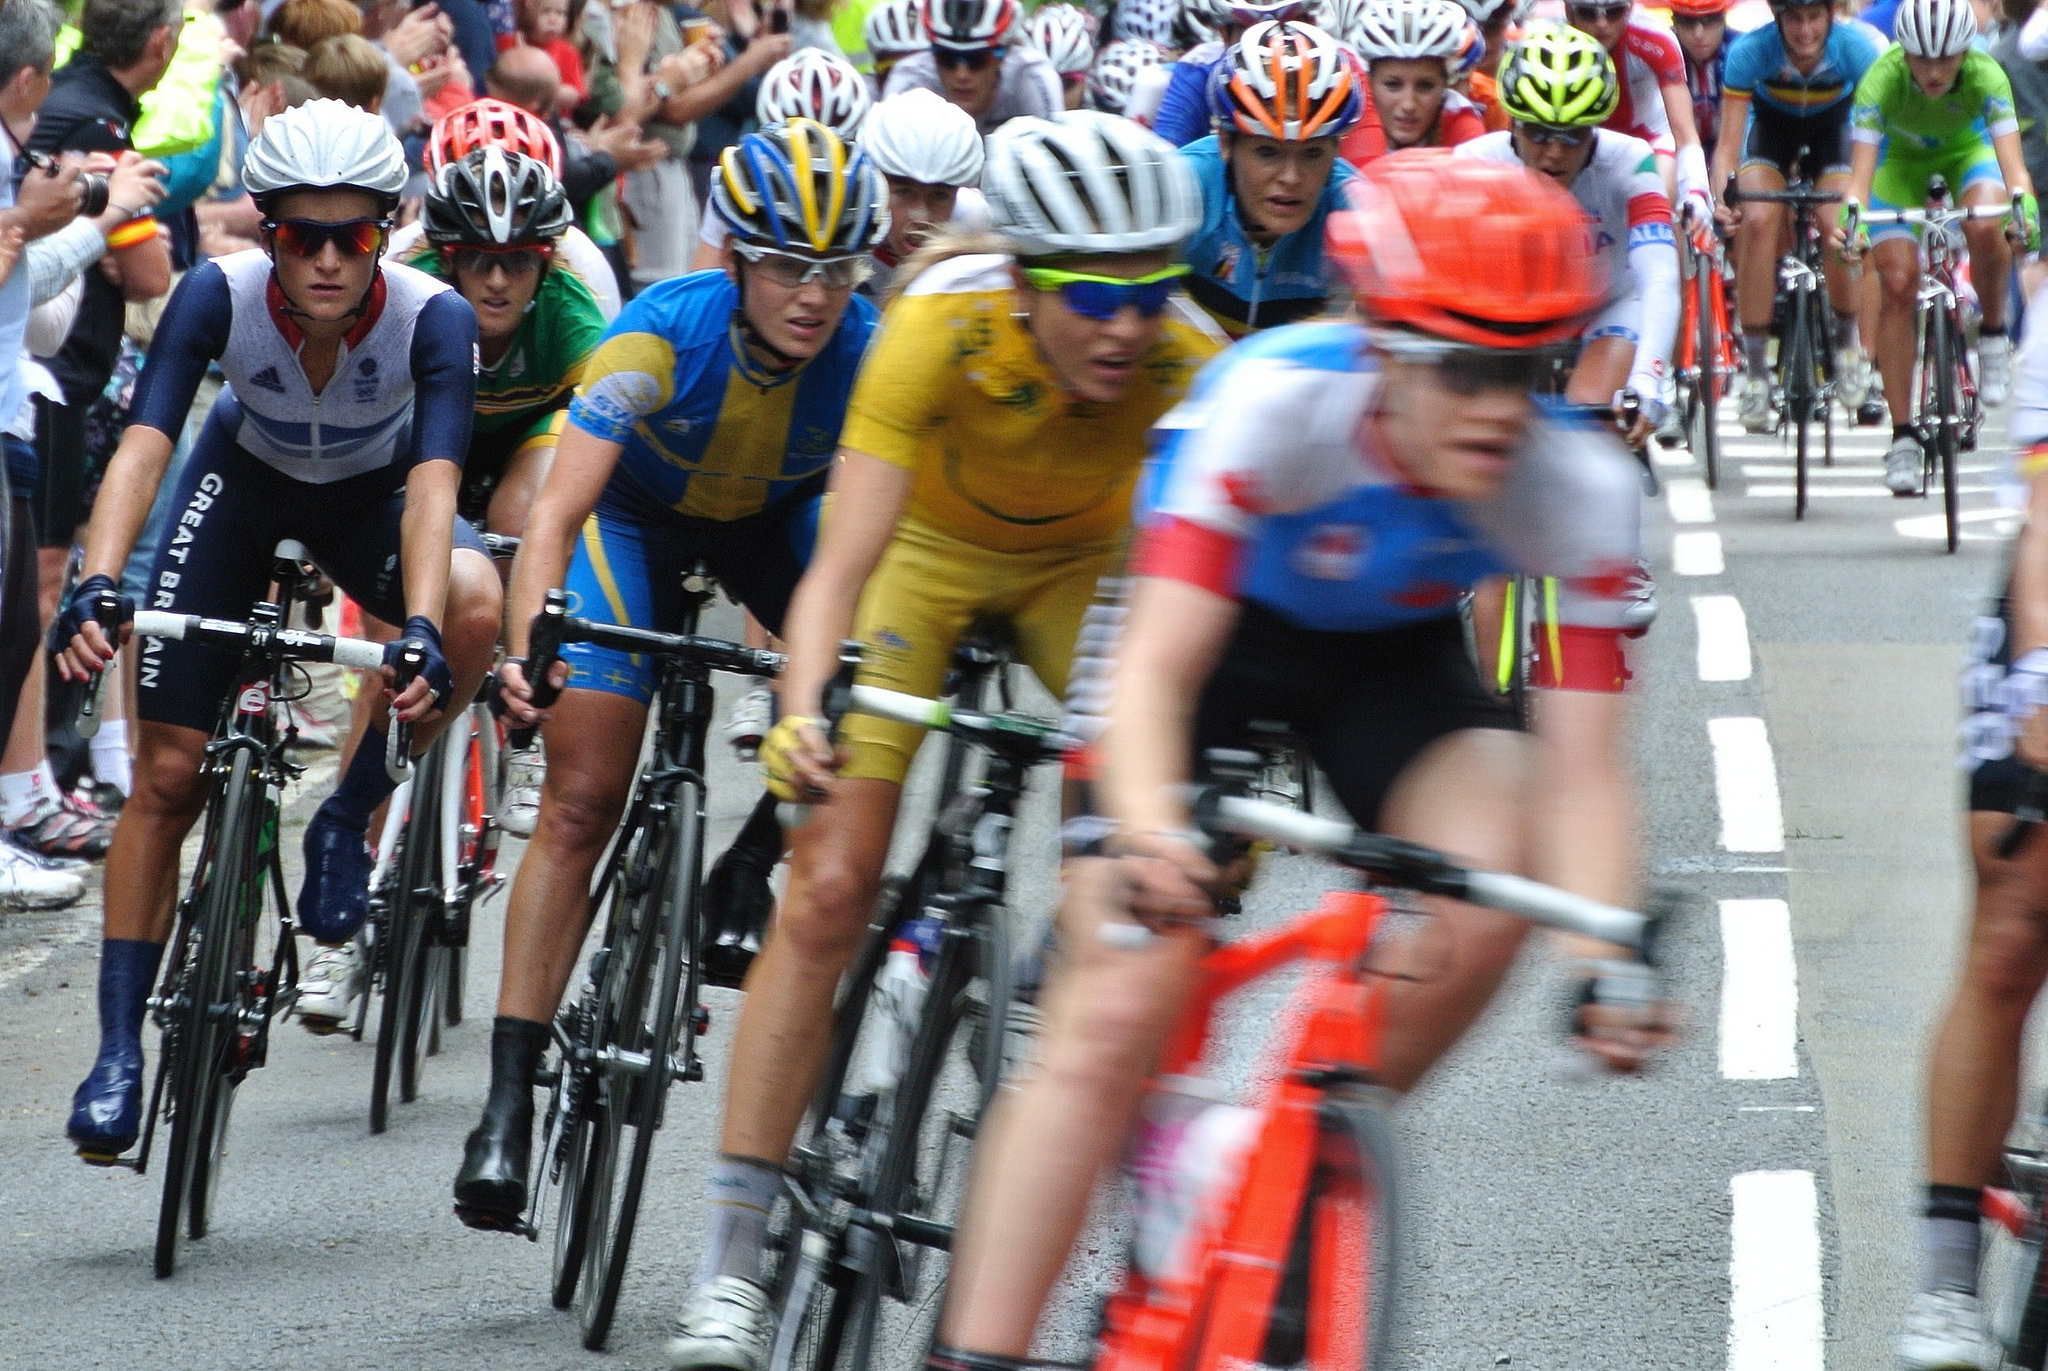 File armitstead in 2012 olympics road cycling race jpg wikimedia